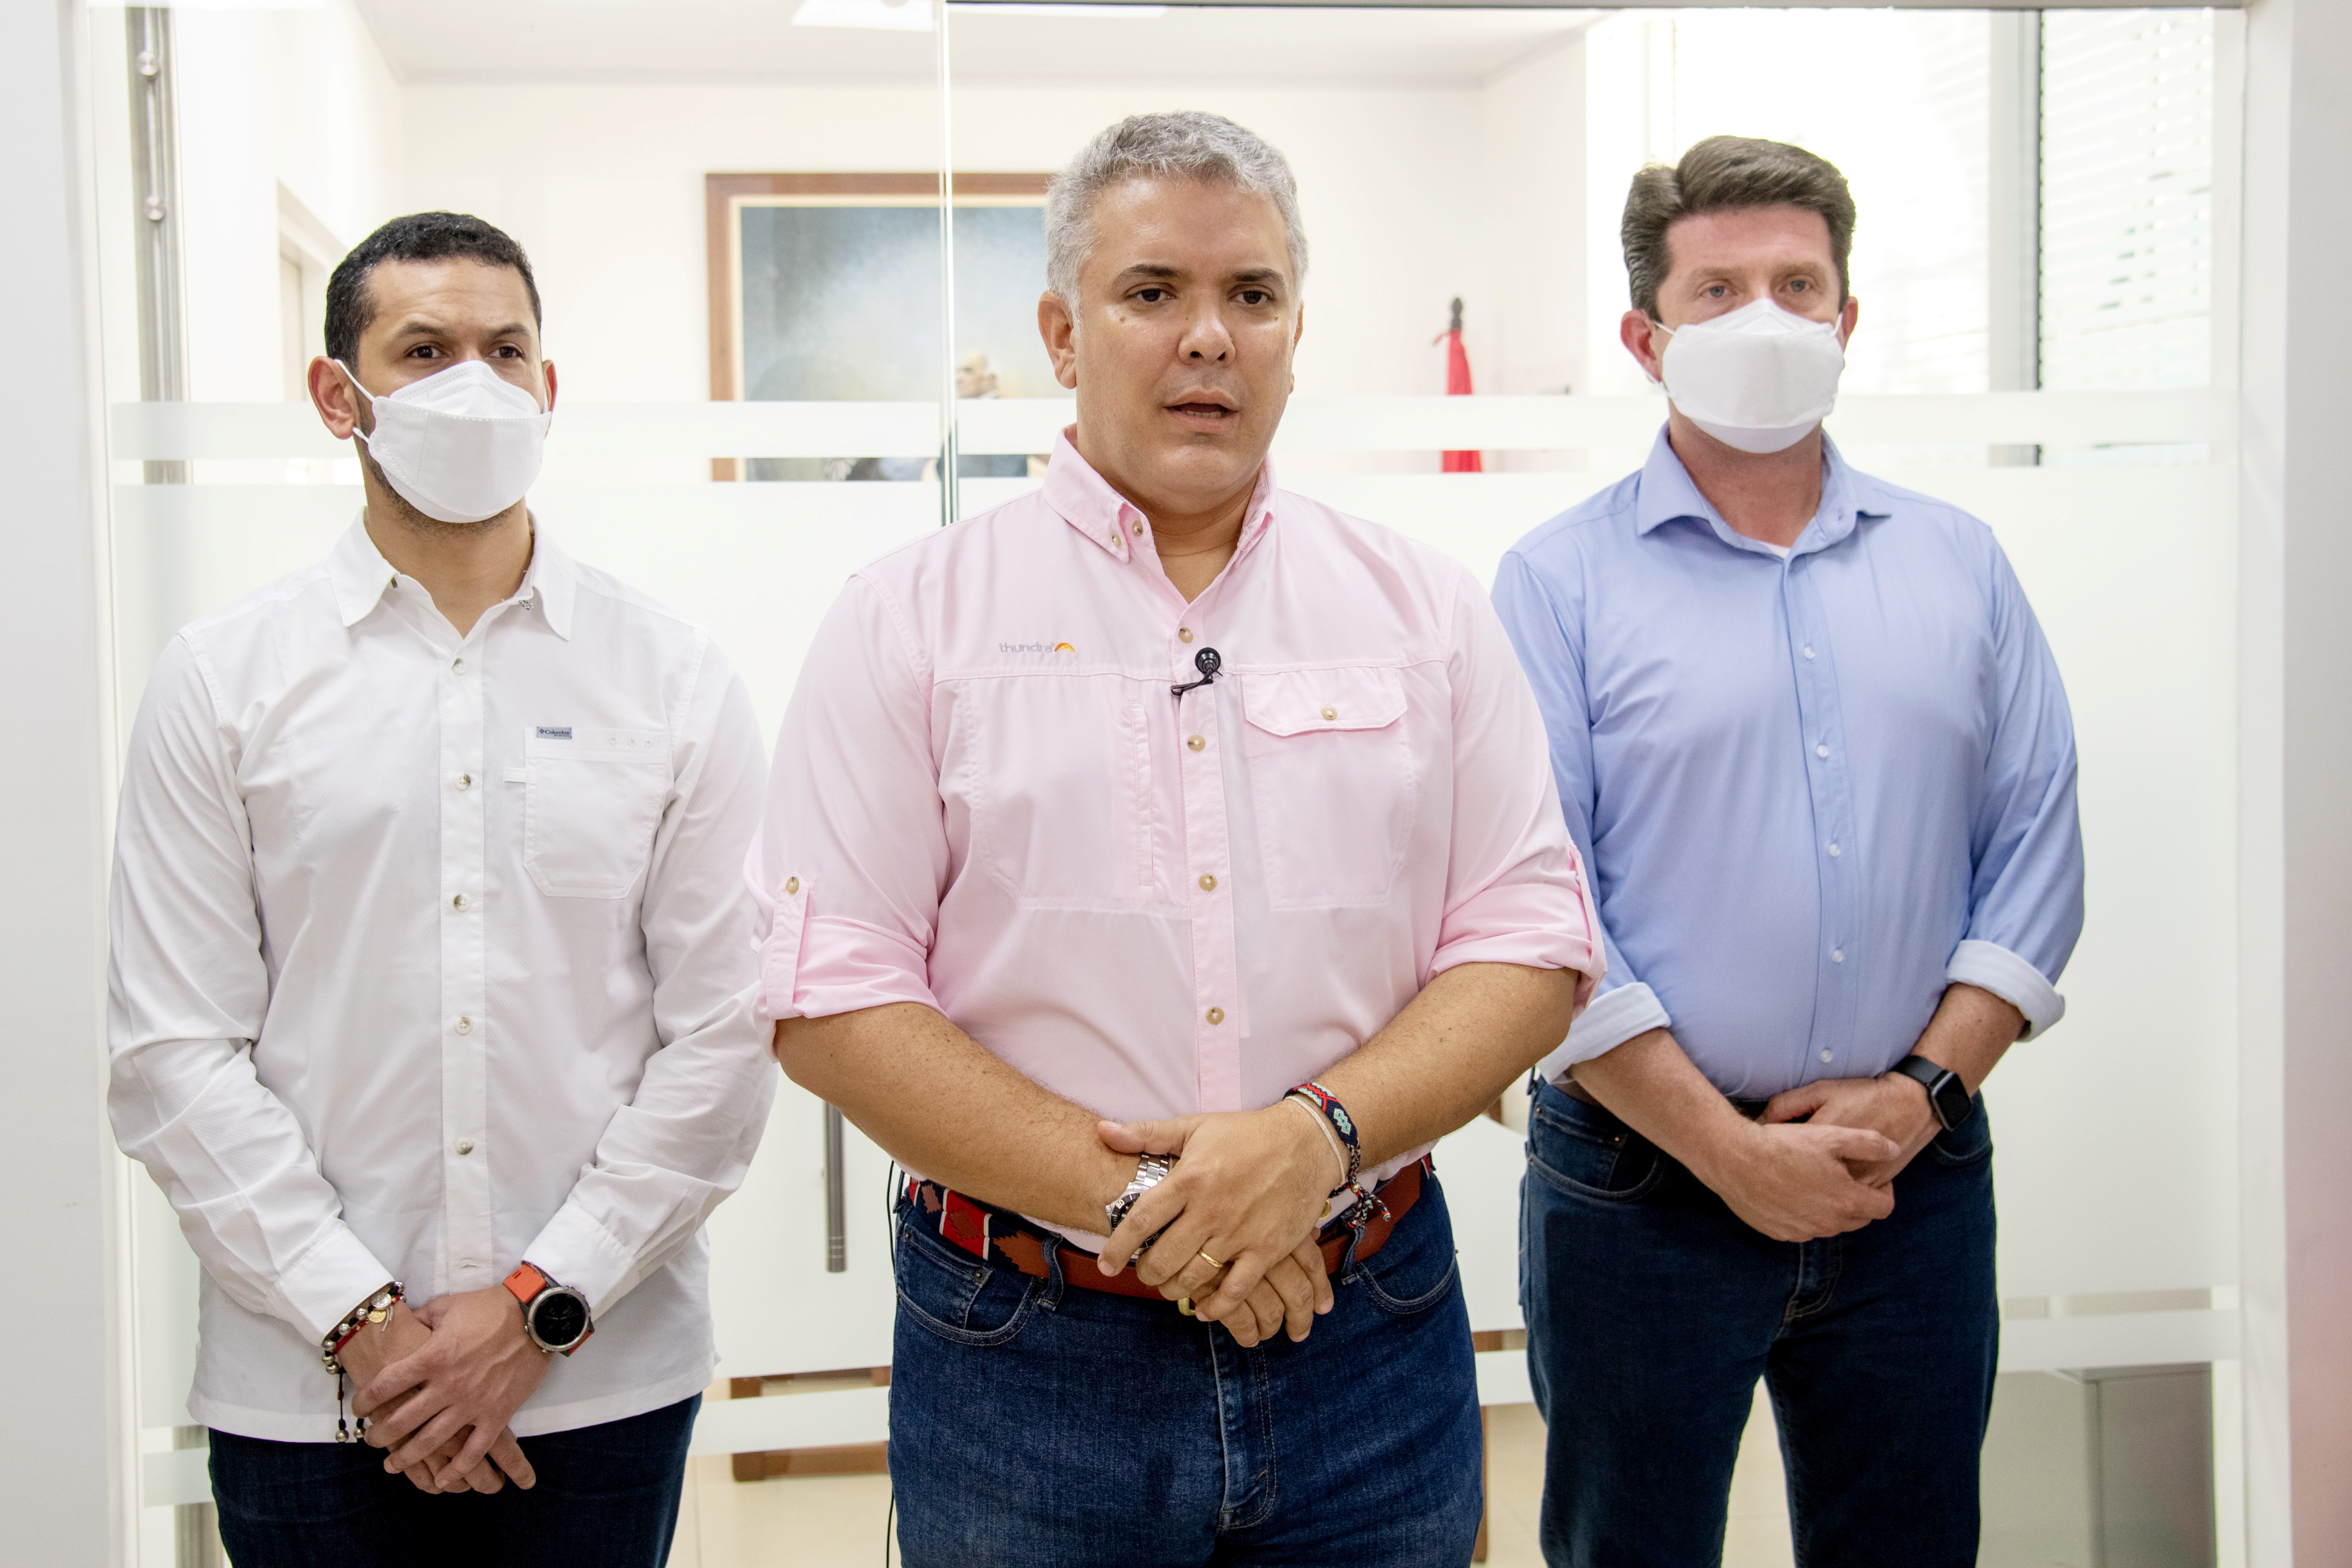 Colombia's President Ivan Duque gives a statement after an attack suffered by the helicopter he was travelling on, according to authorities, in Cucuta, Colombia June 25, 2021. Colombia Presidency/Handout via REUTERS